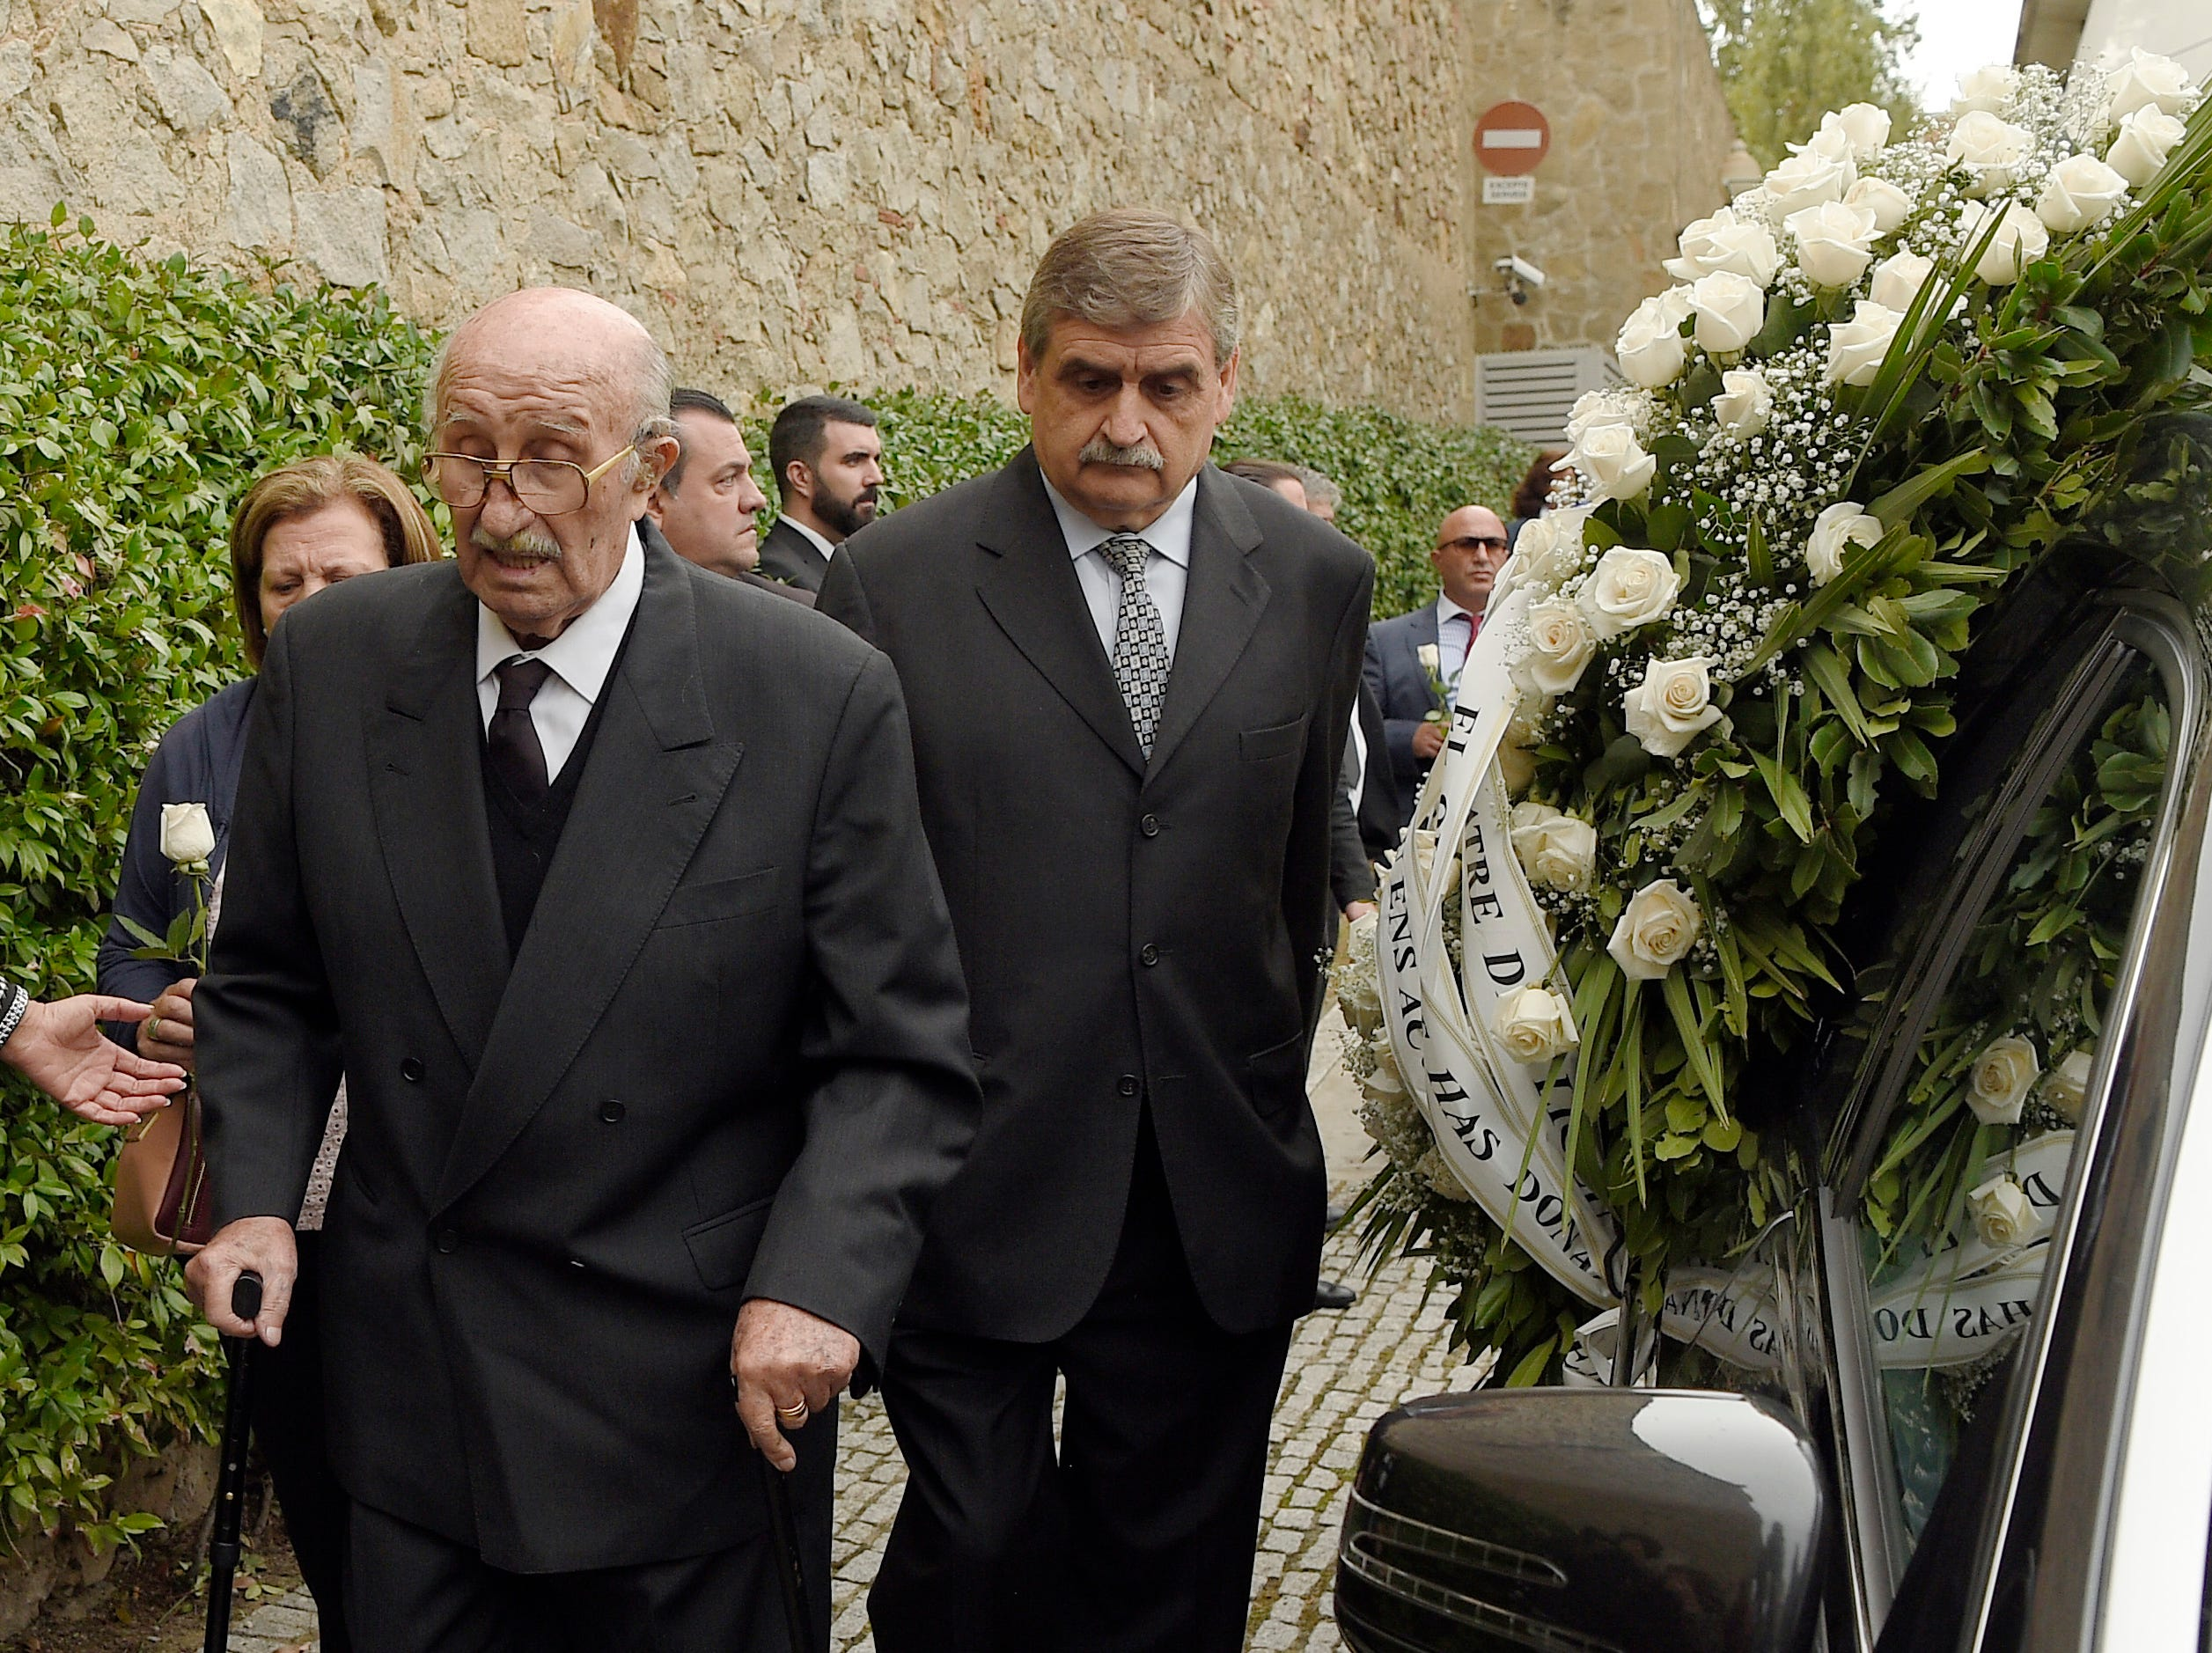 Bernabe Martinez (left) walks past the hearse carrying the remains of his wife, Spanish opera singer Montserrat Caballe, during her funeral in Barcelona on October 8, 2018.